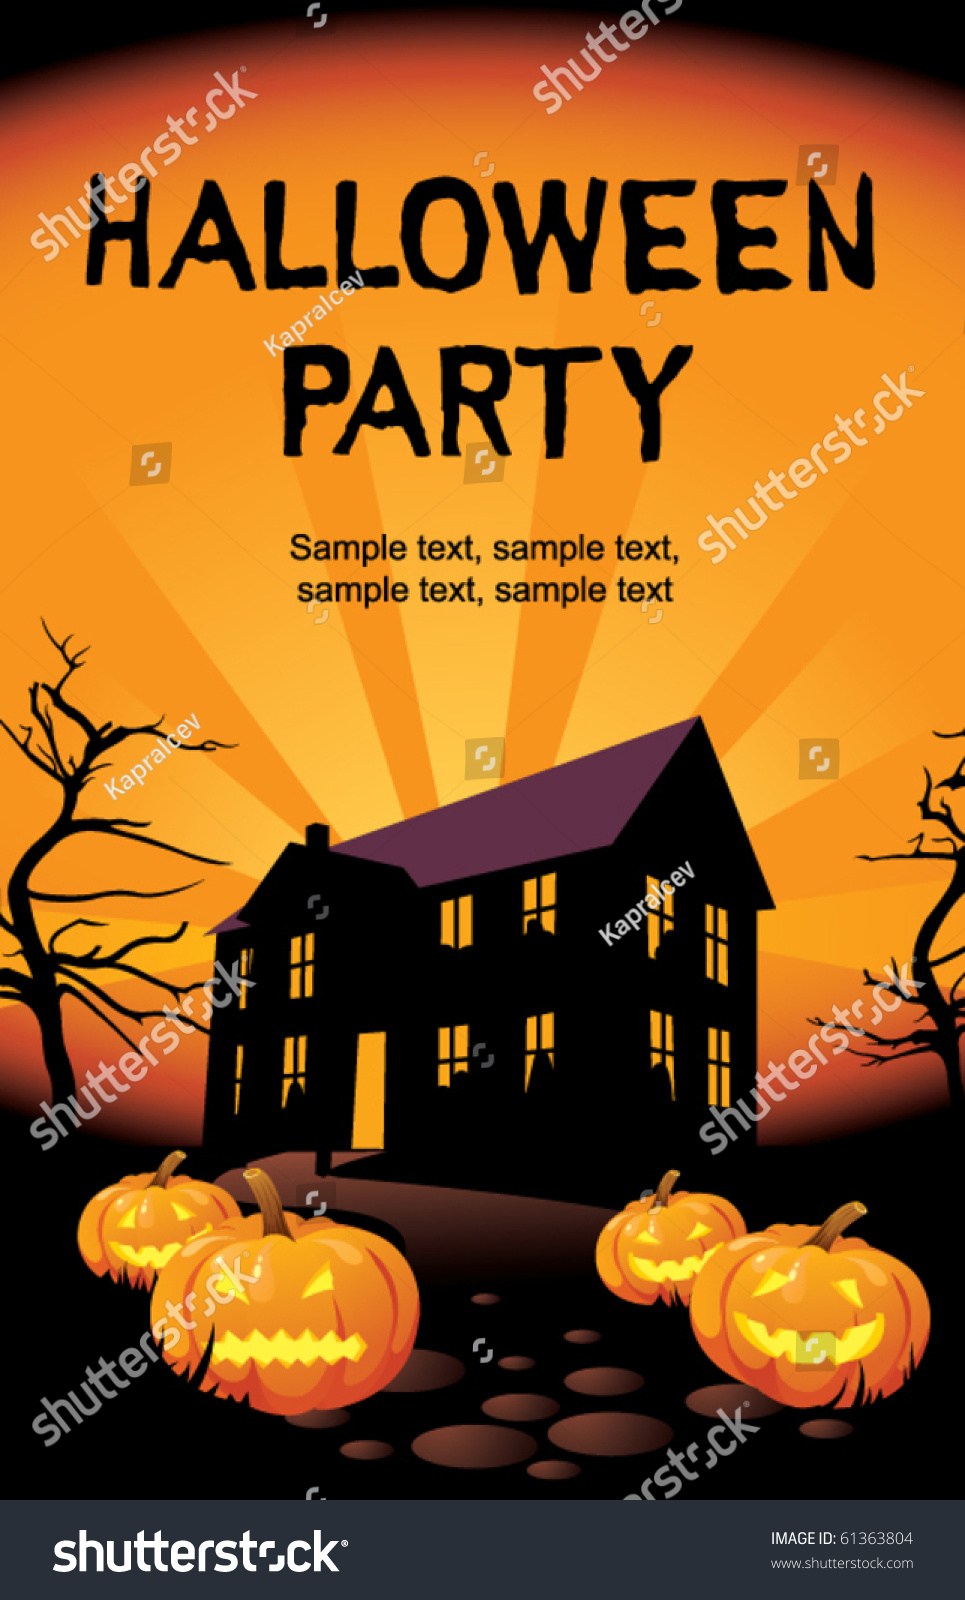 Halloween party home invitation card stock vector 61363804 halloween party at home invitation card stopboris Gallery